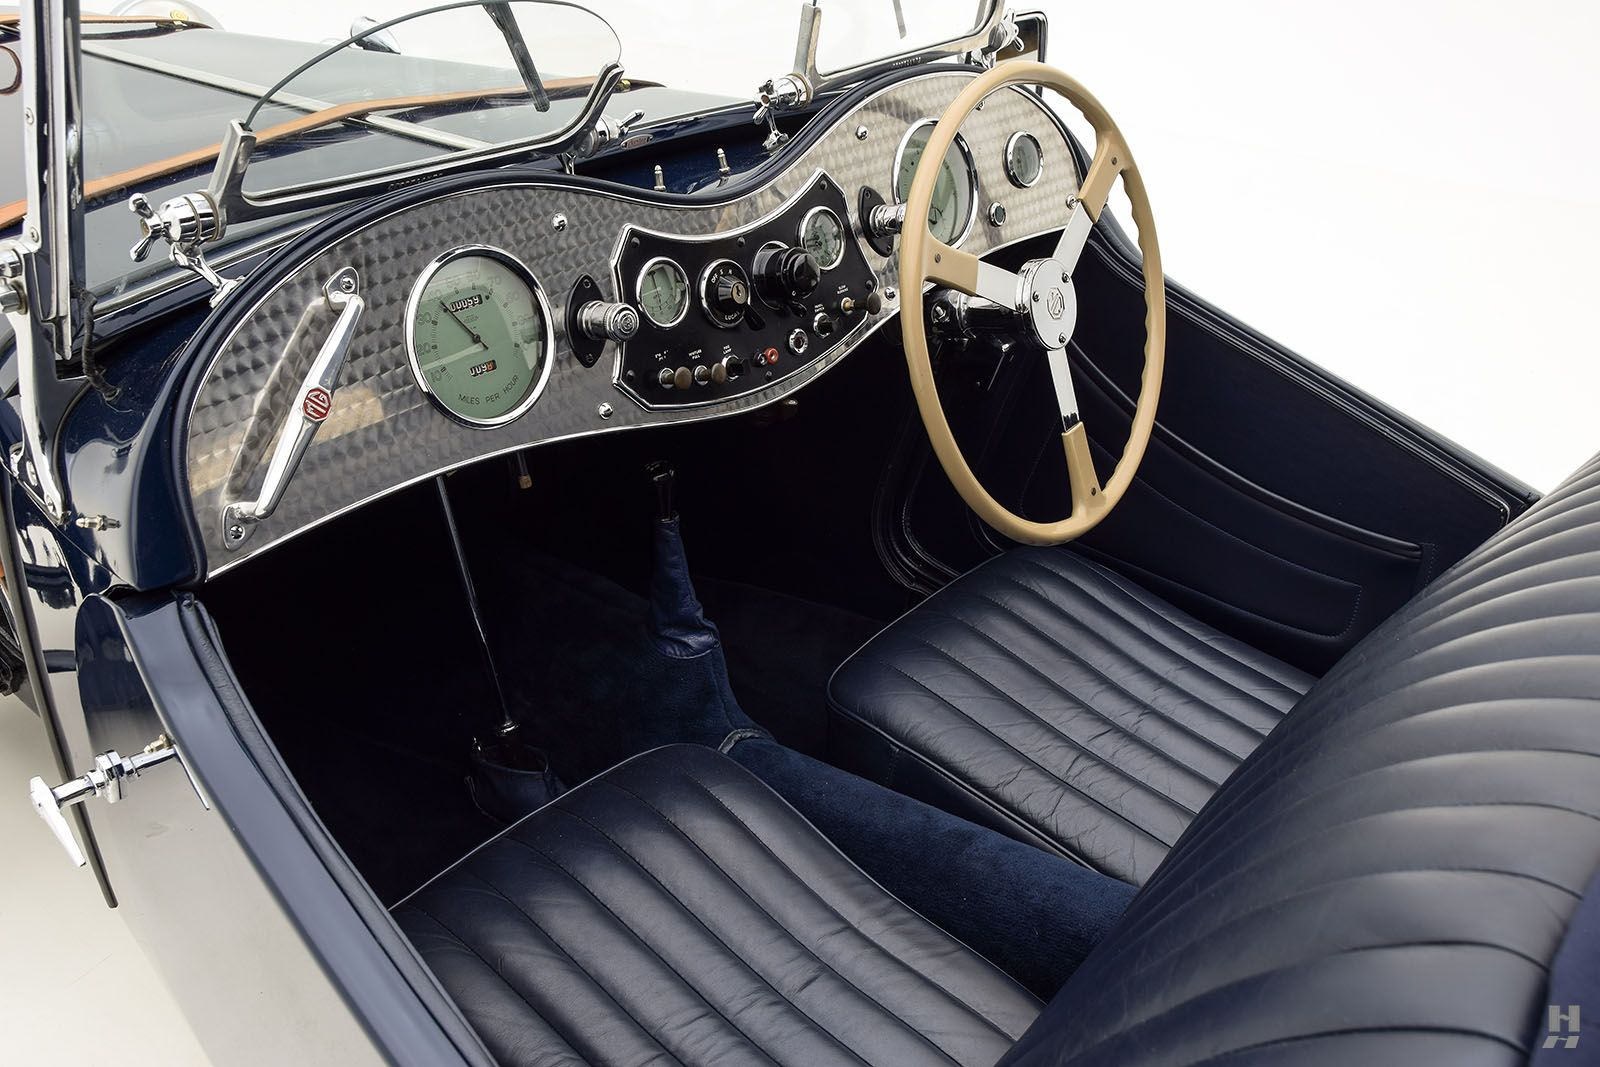 1947 mg tc roadster | antique cars HYMAN LTO. inventory | Pinterest ...